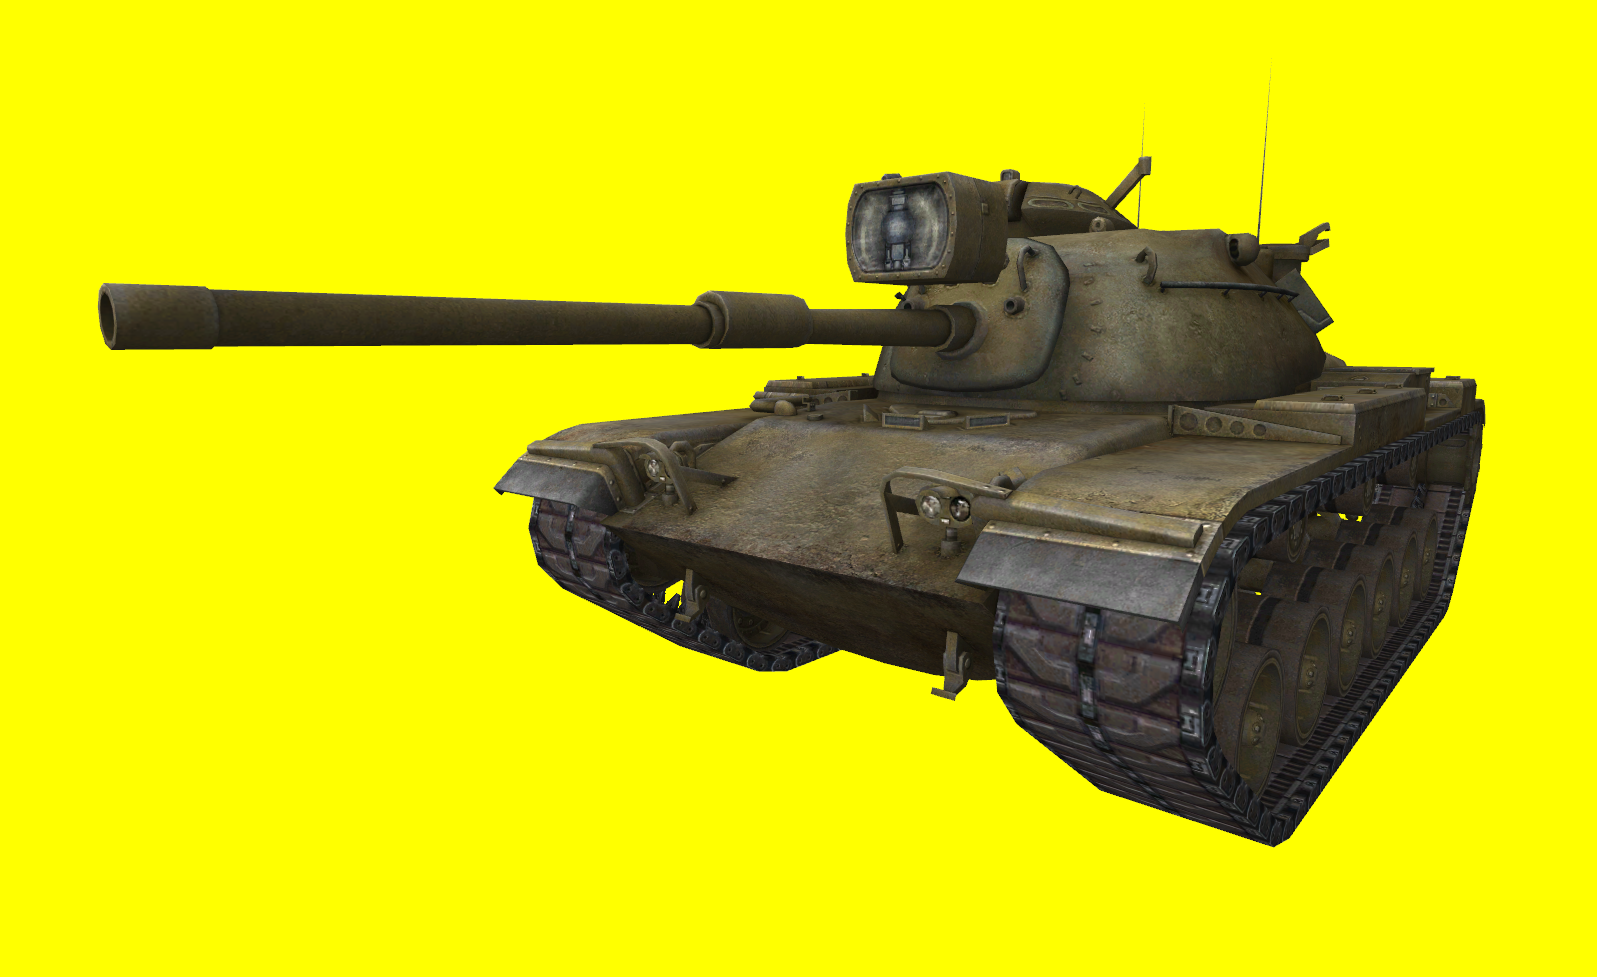 M60_1-43-42.png